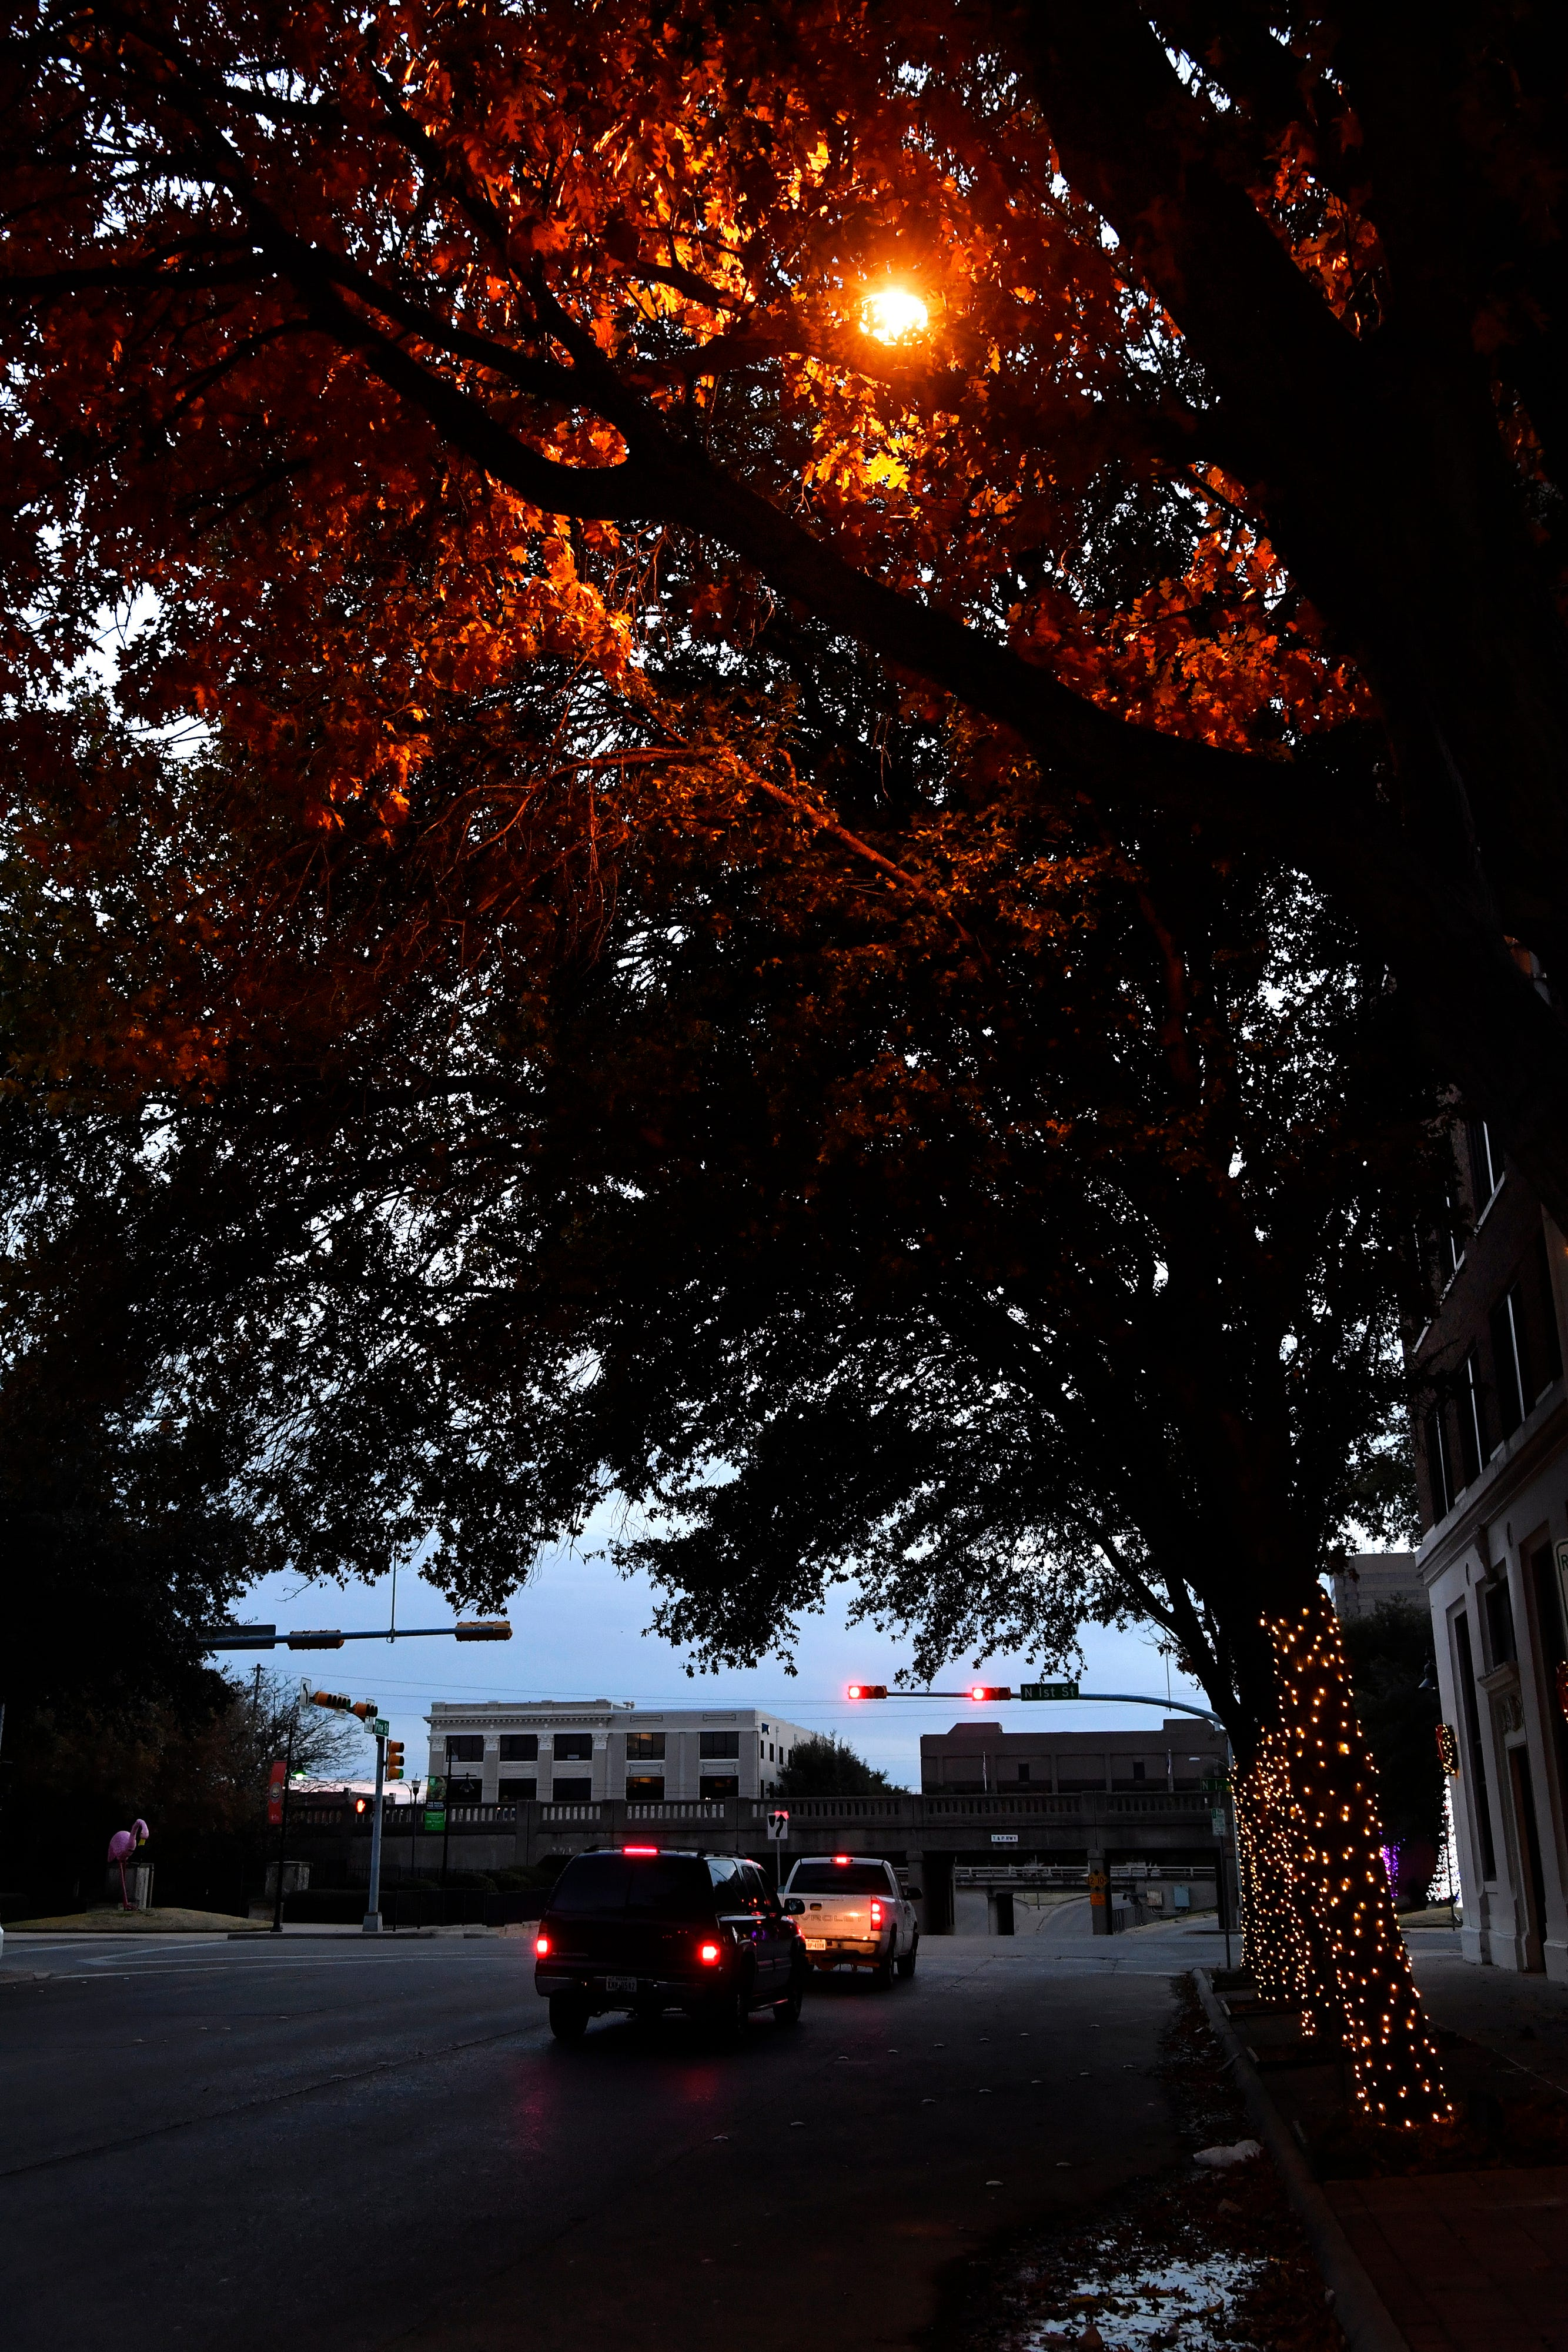 Cars wait for the light at North First and Pine streets as a streetlight casts an orange glow over leaves already turning orange.